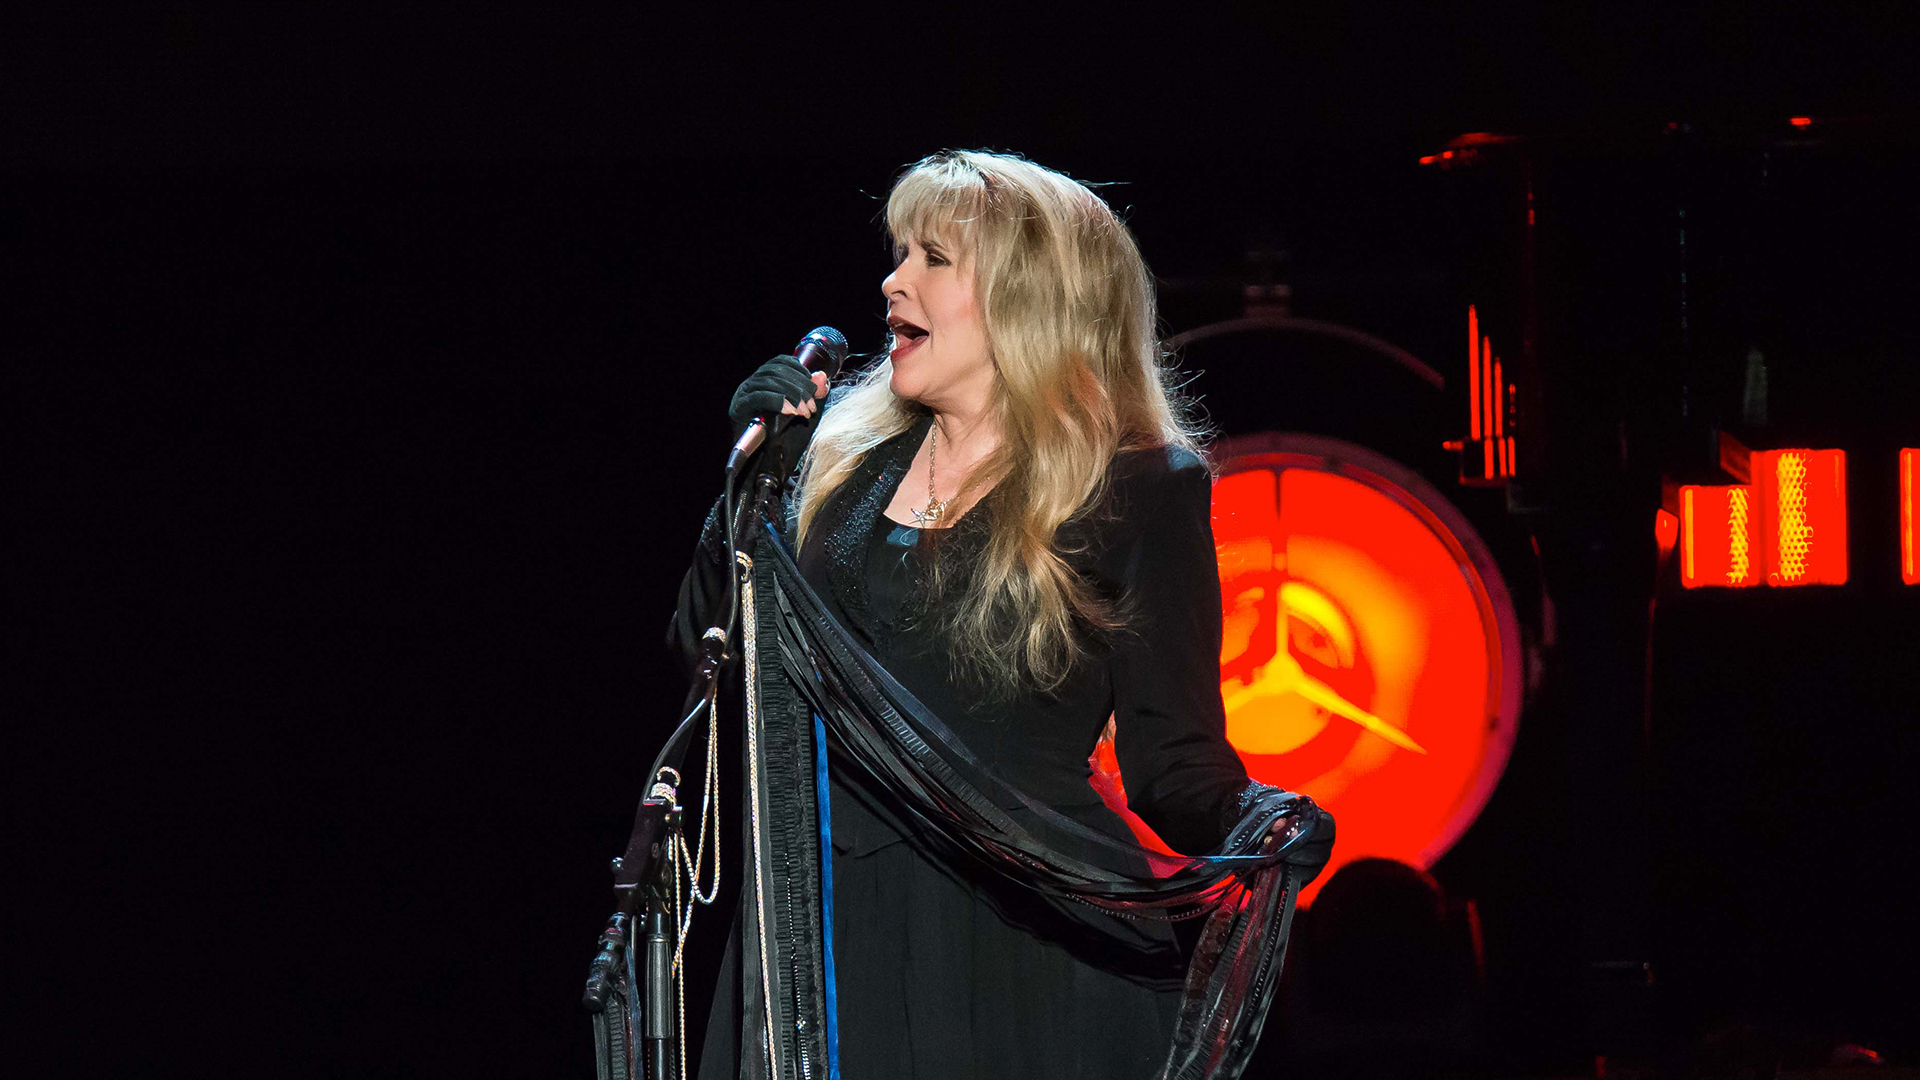 stevie nicks 24 karat gold review